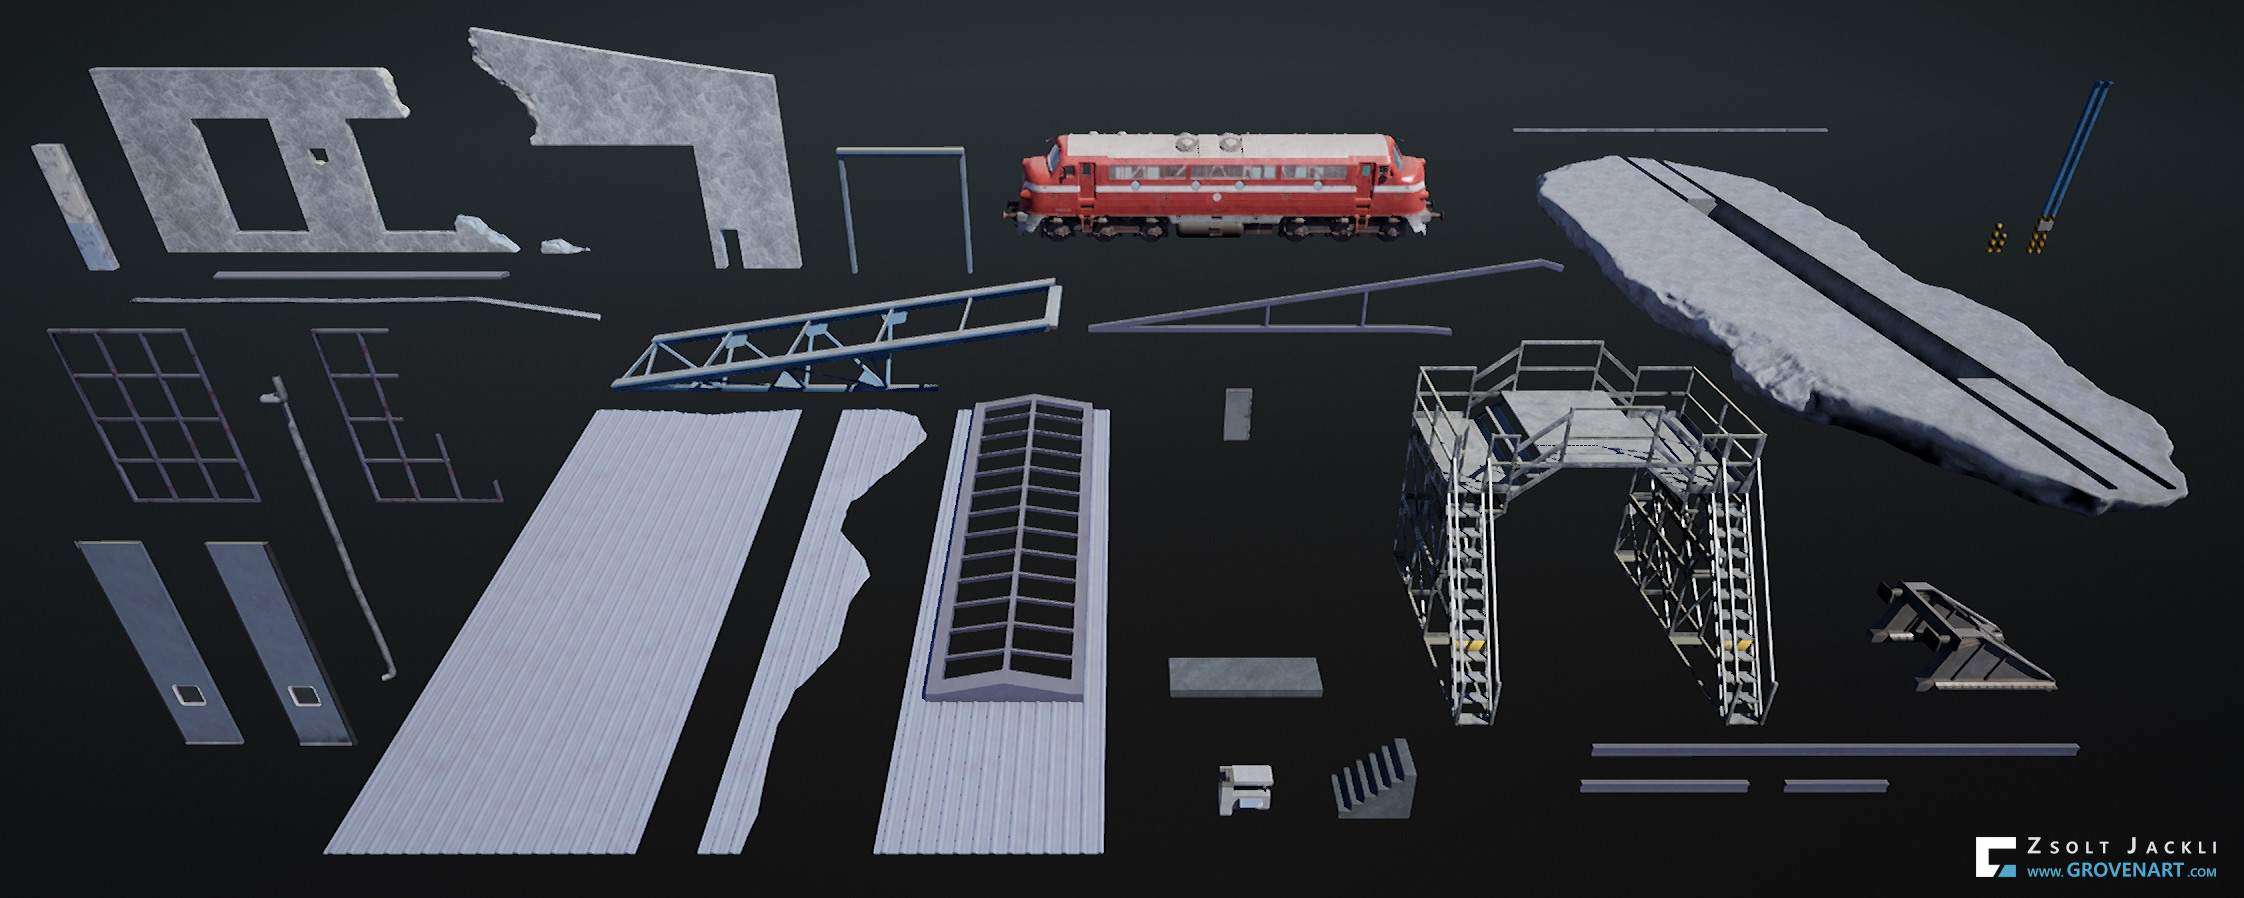 Assets used to build the scene